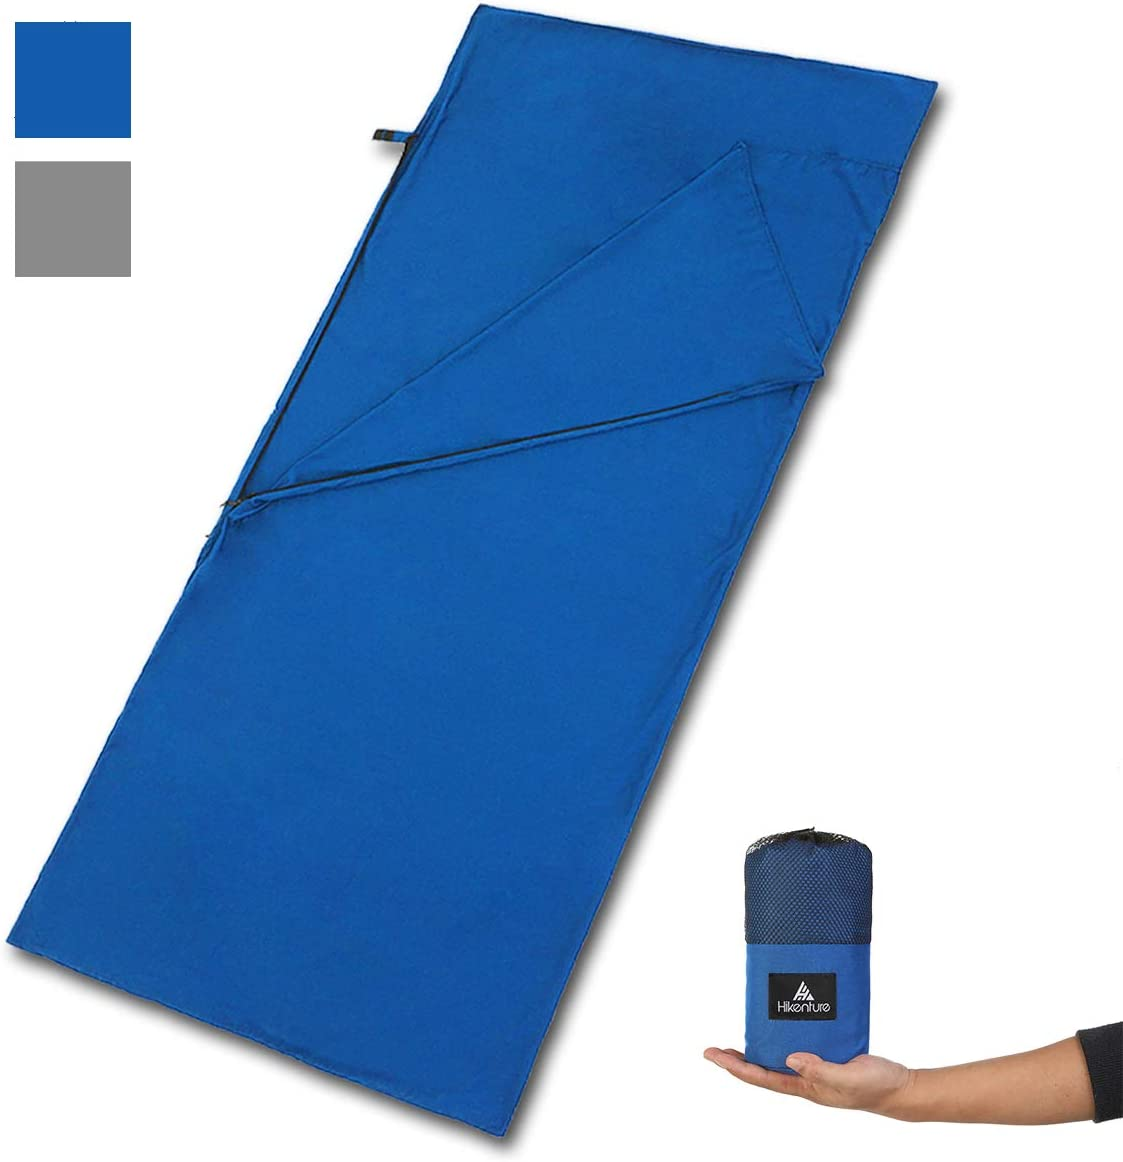 HIKENTURE Sleeping Bag Liner -Soft Polyester Microfiber Camping Sheet- Portable Lightweight Travel Sheet with Zipper-87 x 35 inches Sleep Sack for Adult-Hotels,Hiking,Camping and Travel